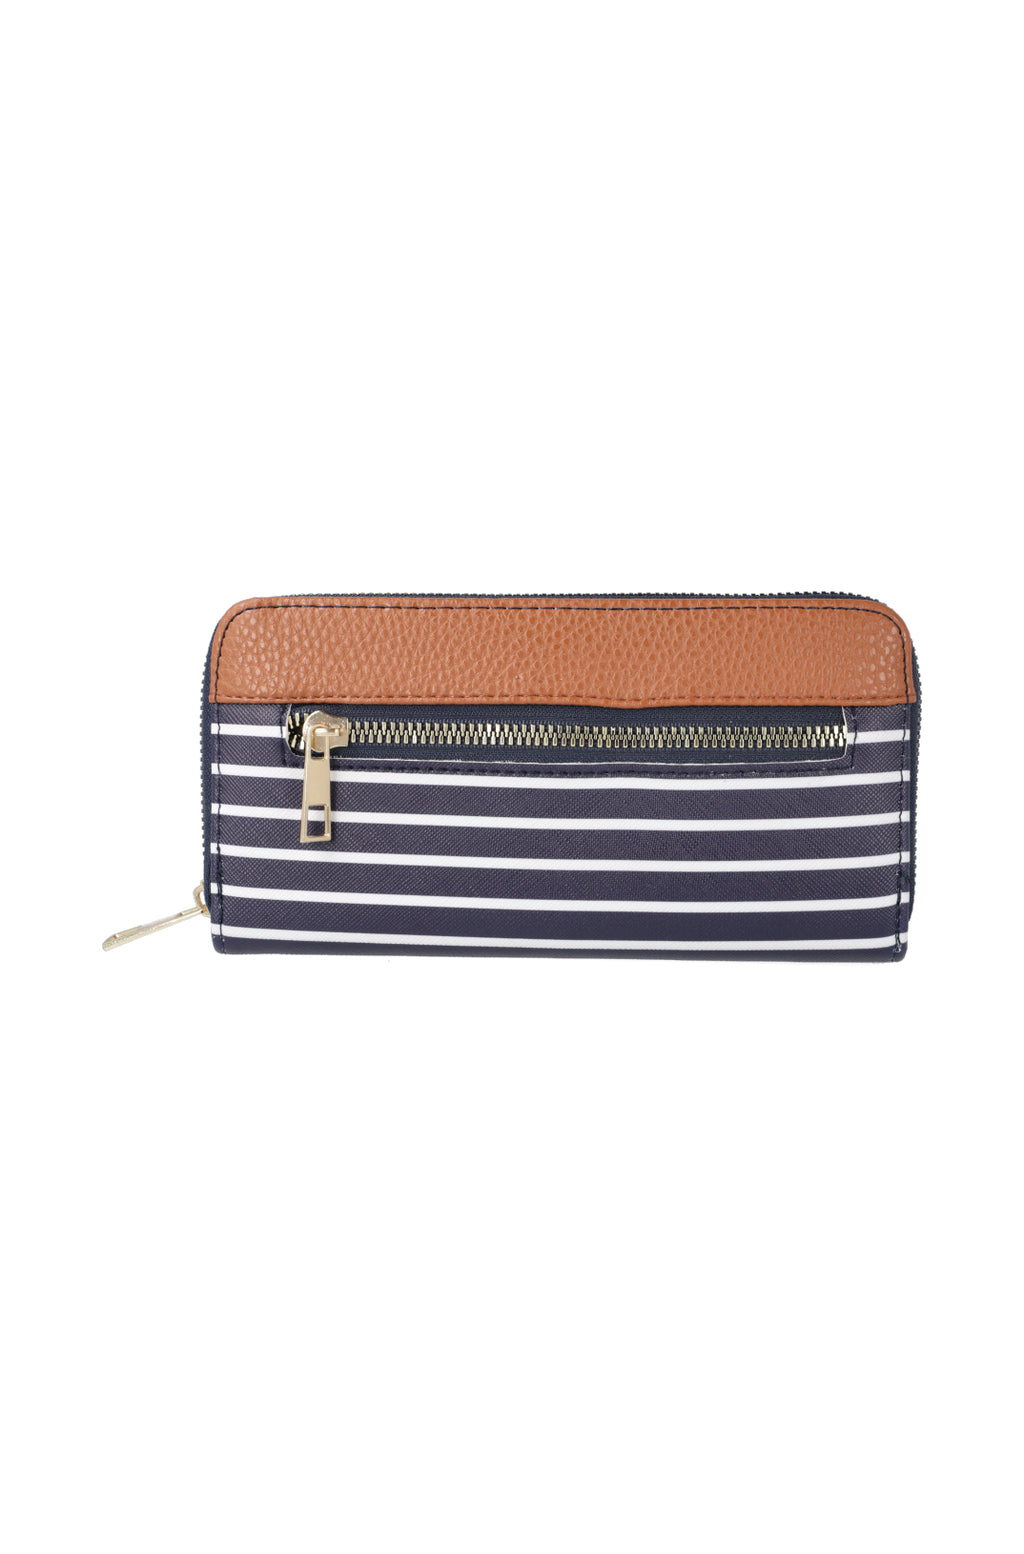 Marlett Nautical Combo Wallet _ 114054 _ Navy